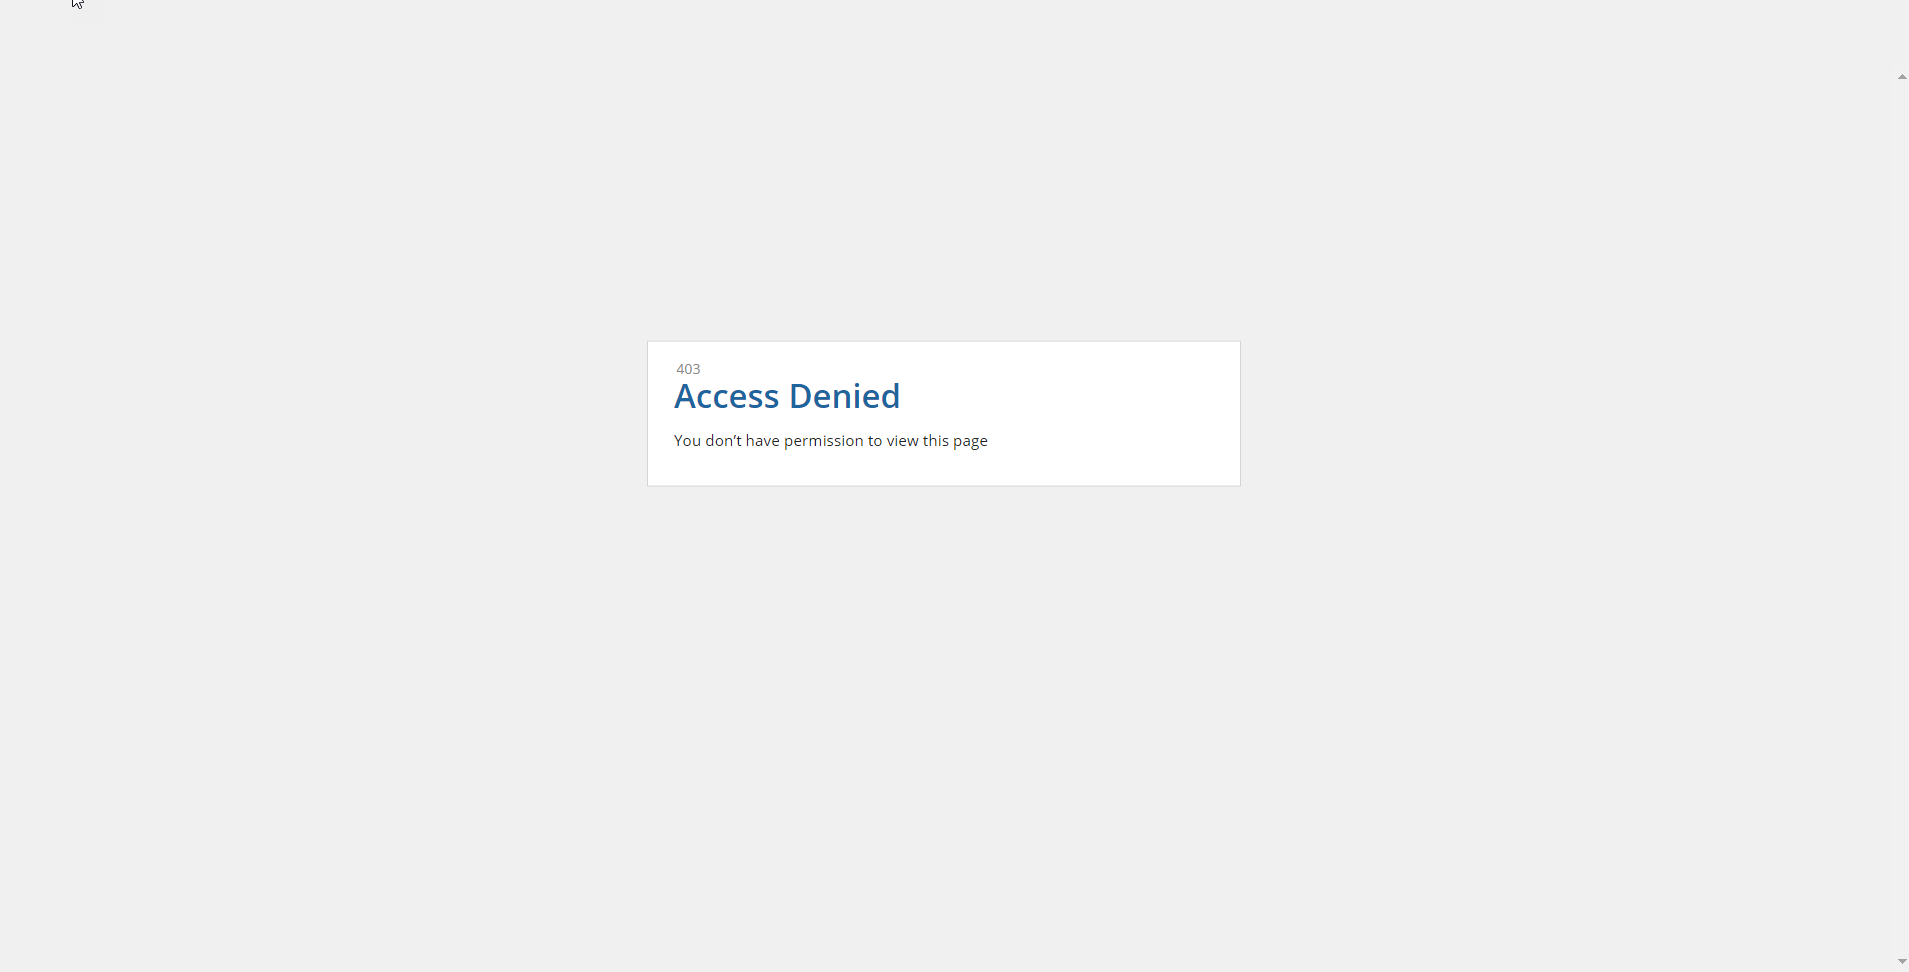 403 Access Denied Message on site - Administration - Discussions